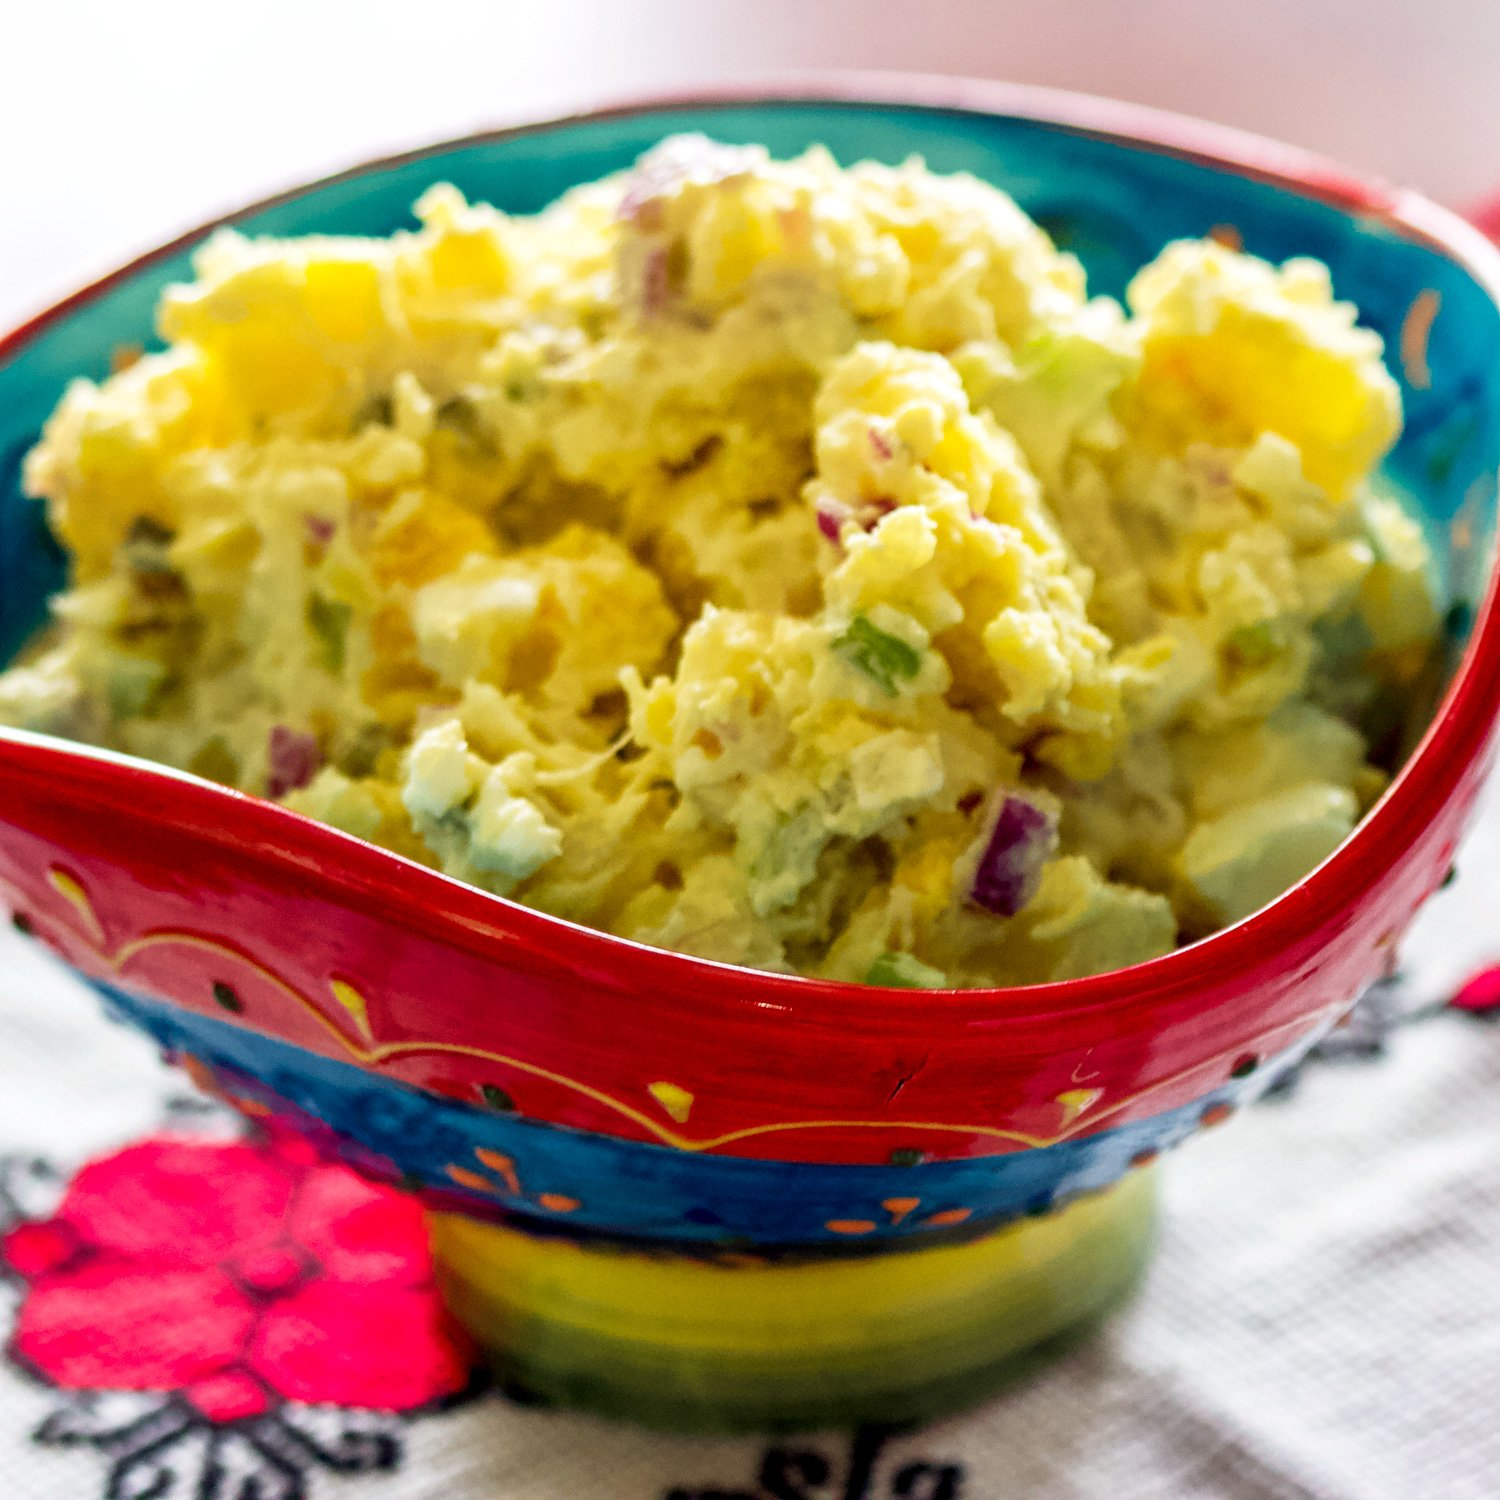 This is a classic, delicious easy American potato salad that can be made all year round. Make it with a day before and serve it chilled.